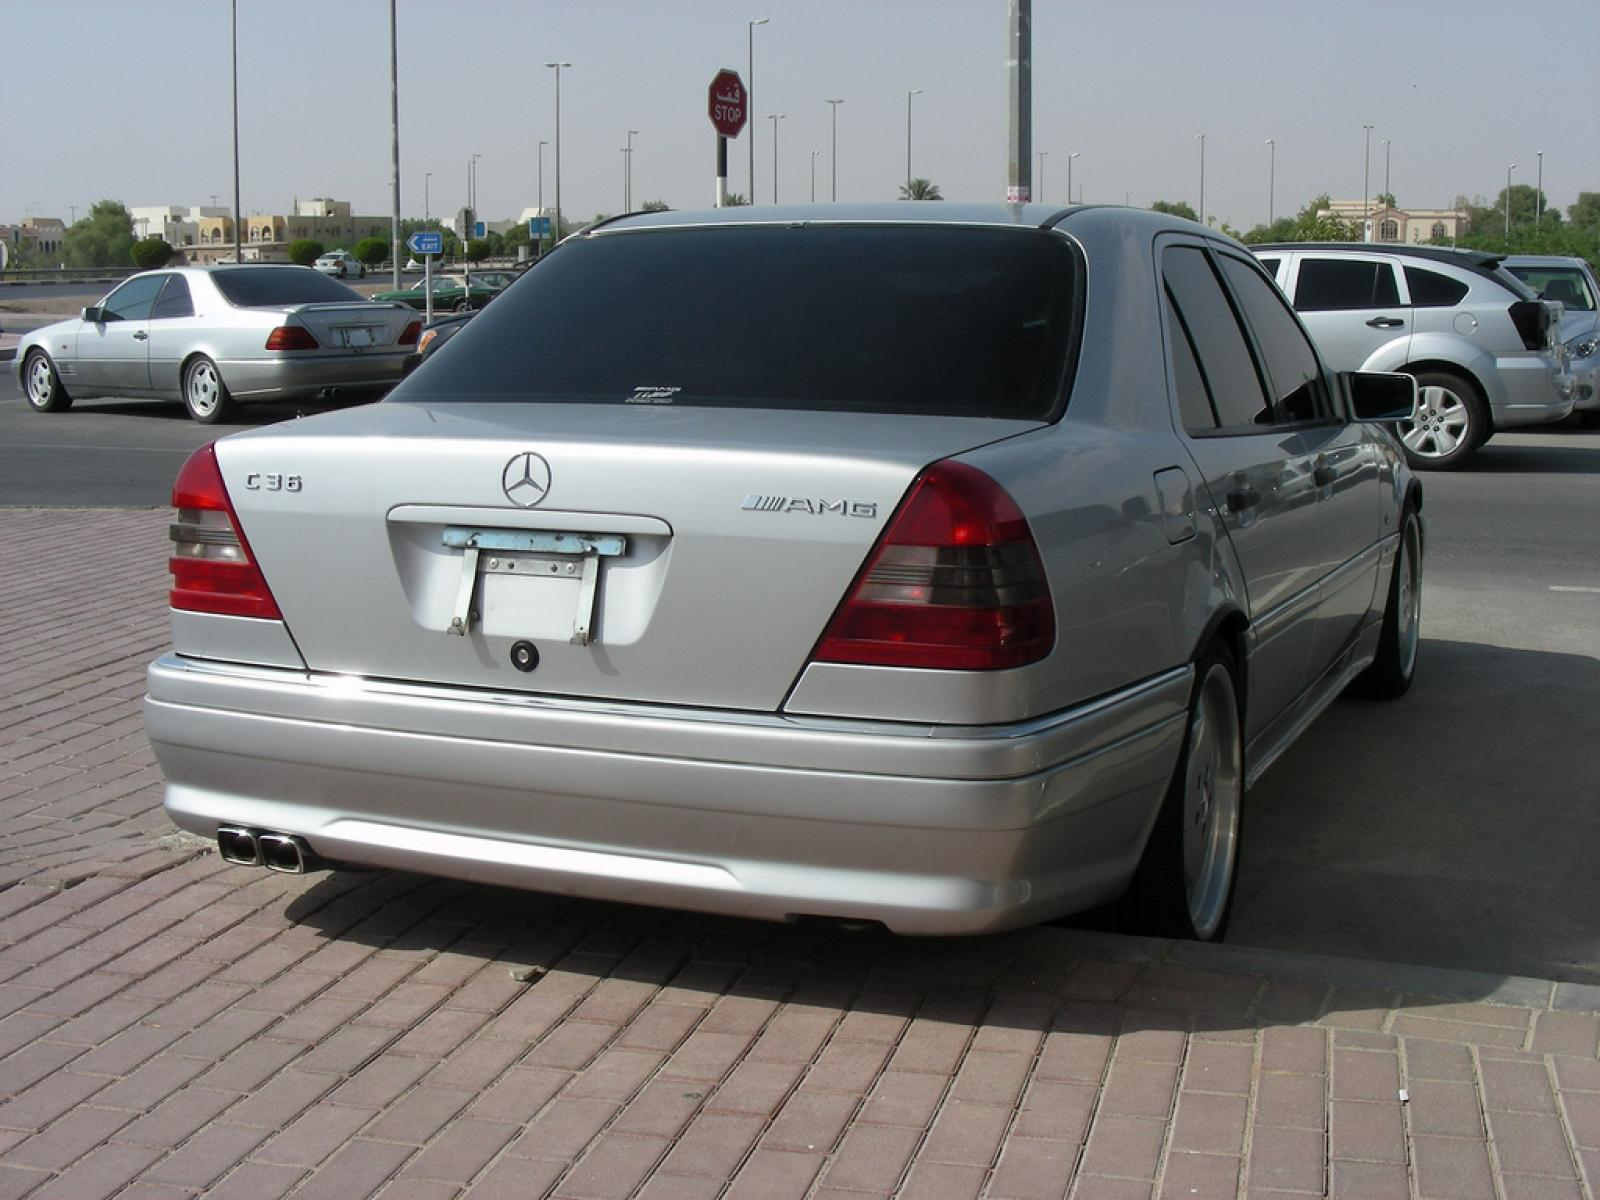 1996 Mercedes-Benz C36 AMG - Information and photos - Zomb Drive